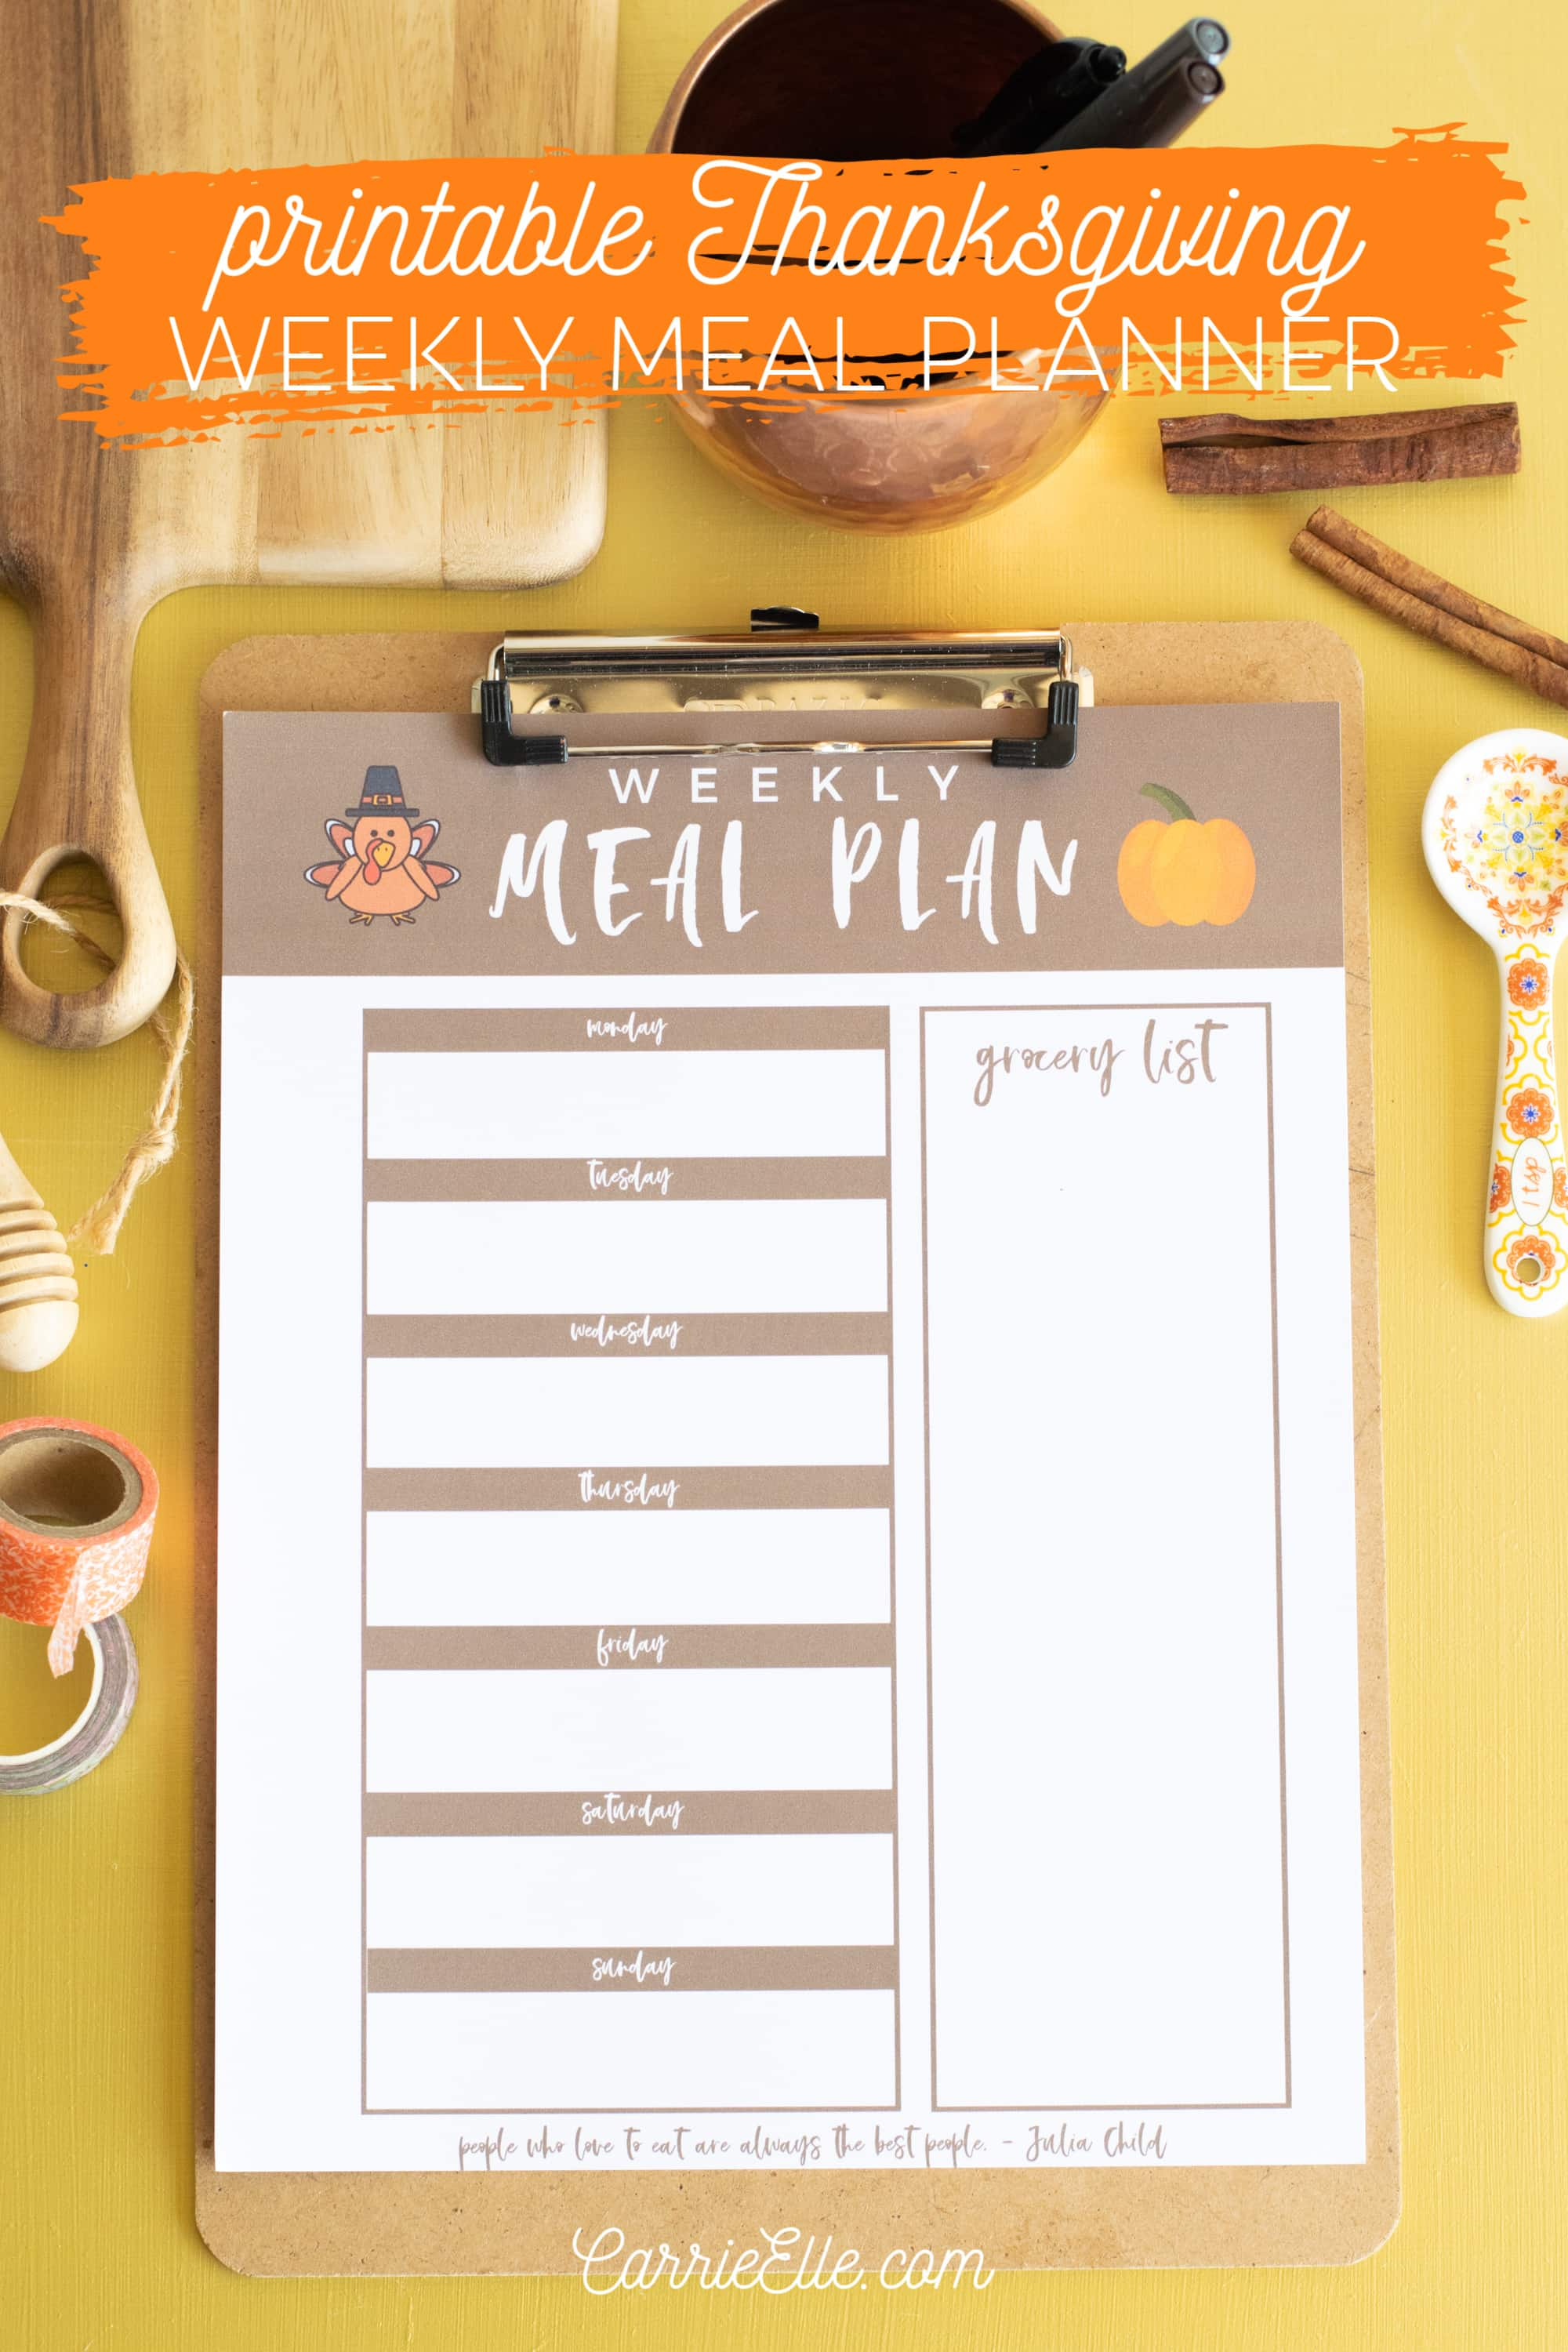 Printable Weekly Meal Planner for November